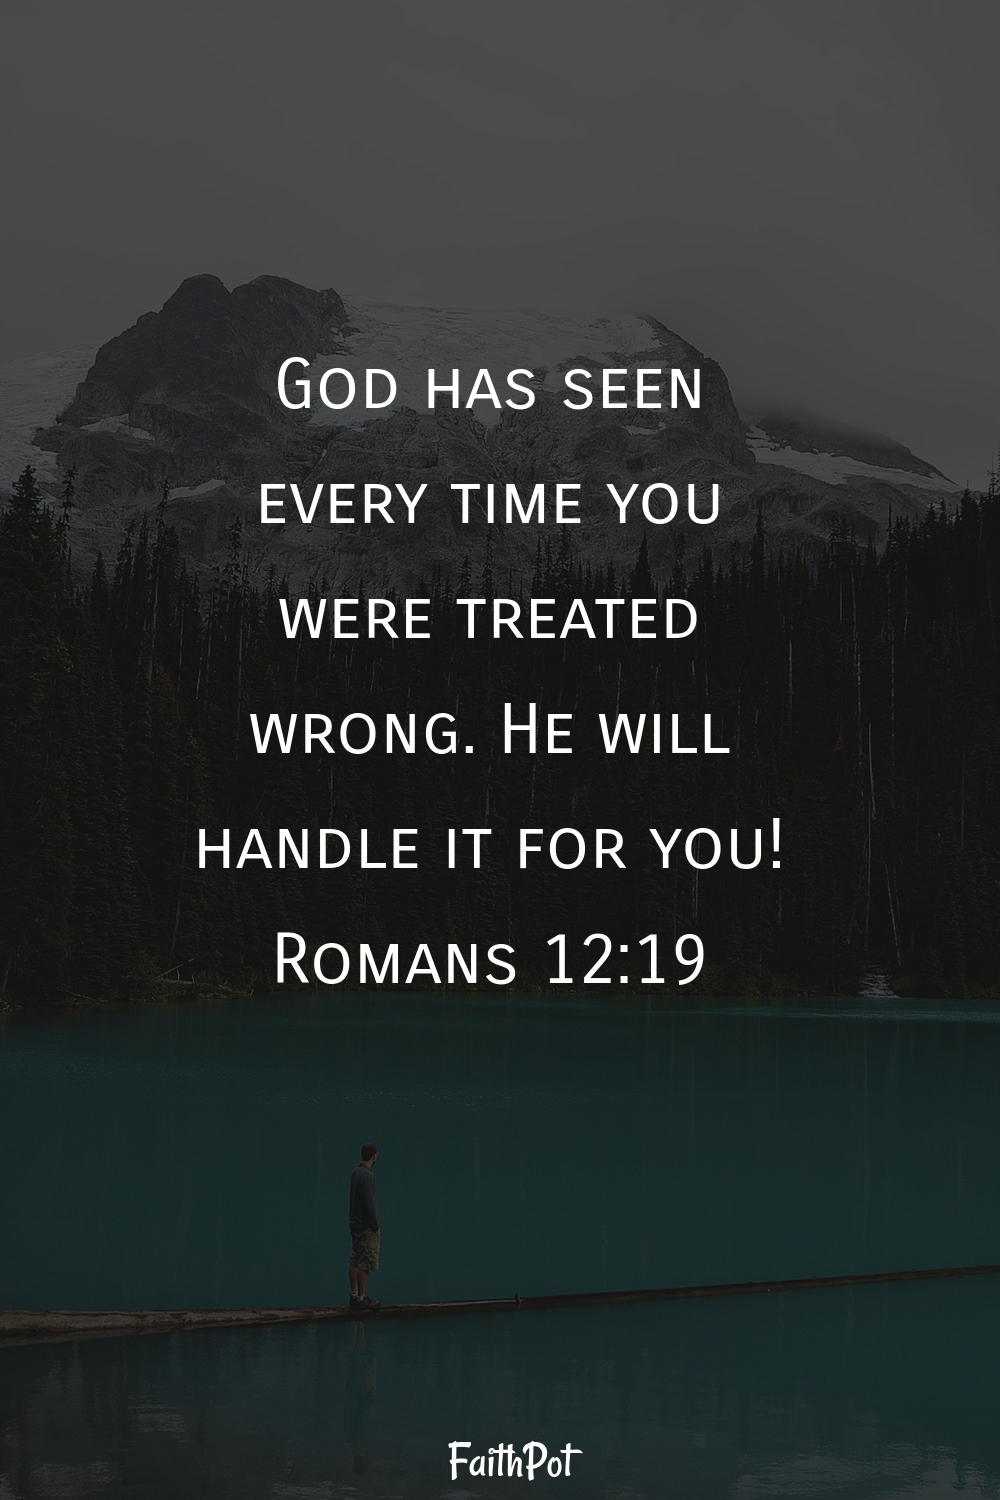 God will handle it for you